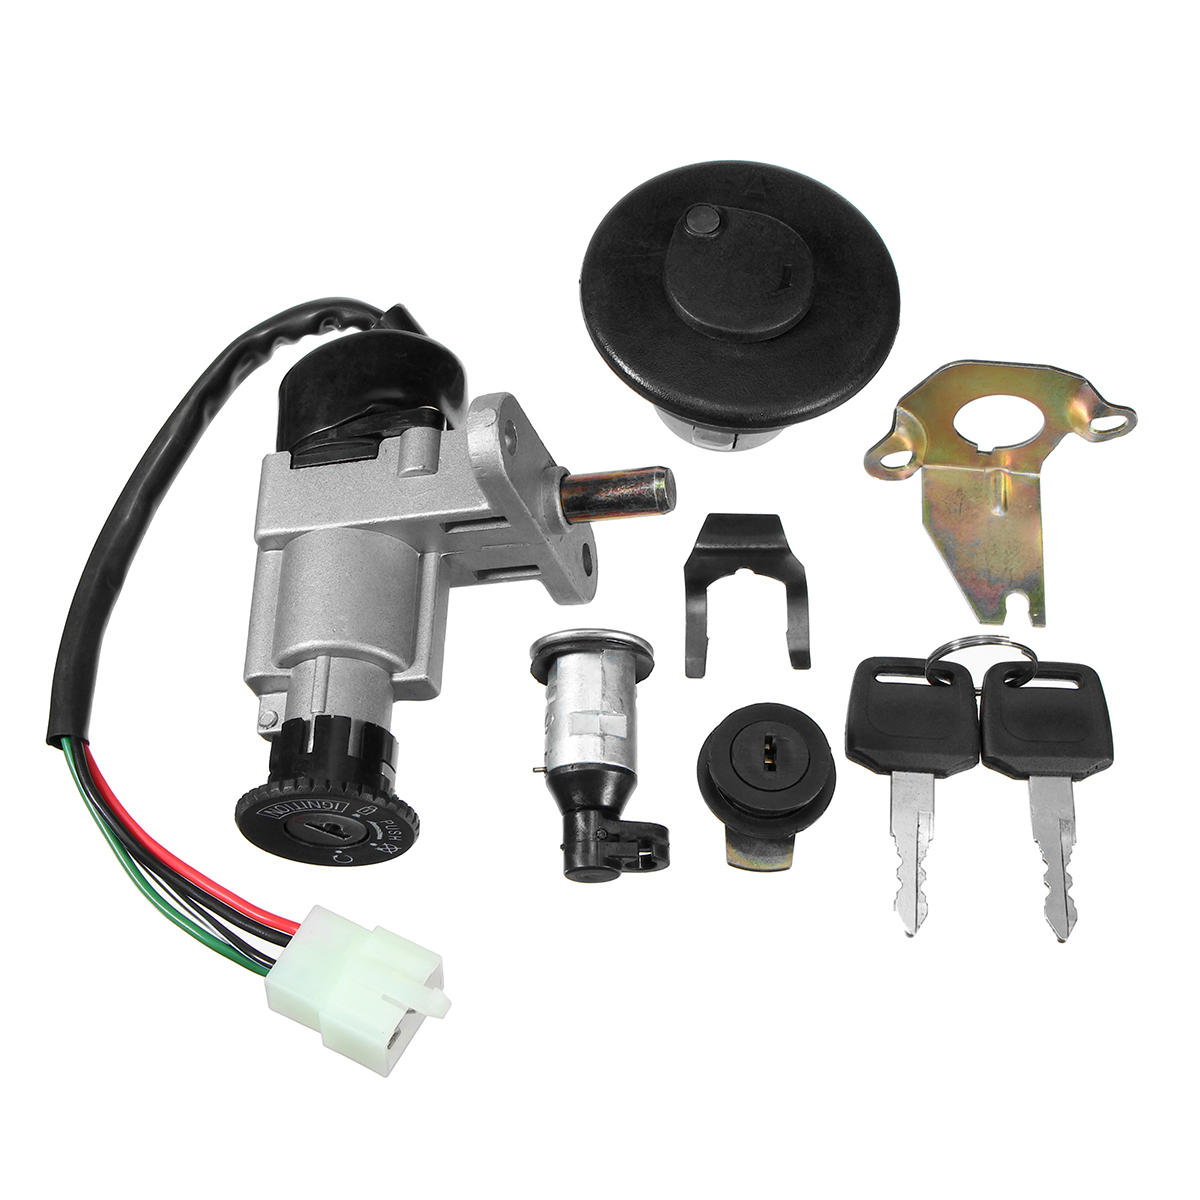 universal ignition switch key set 139qmb 50cc gy6 150cc ...